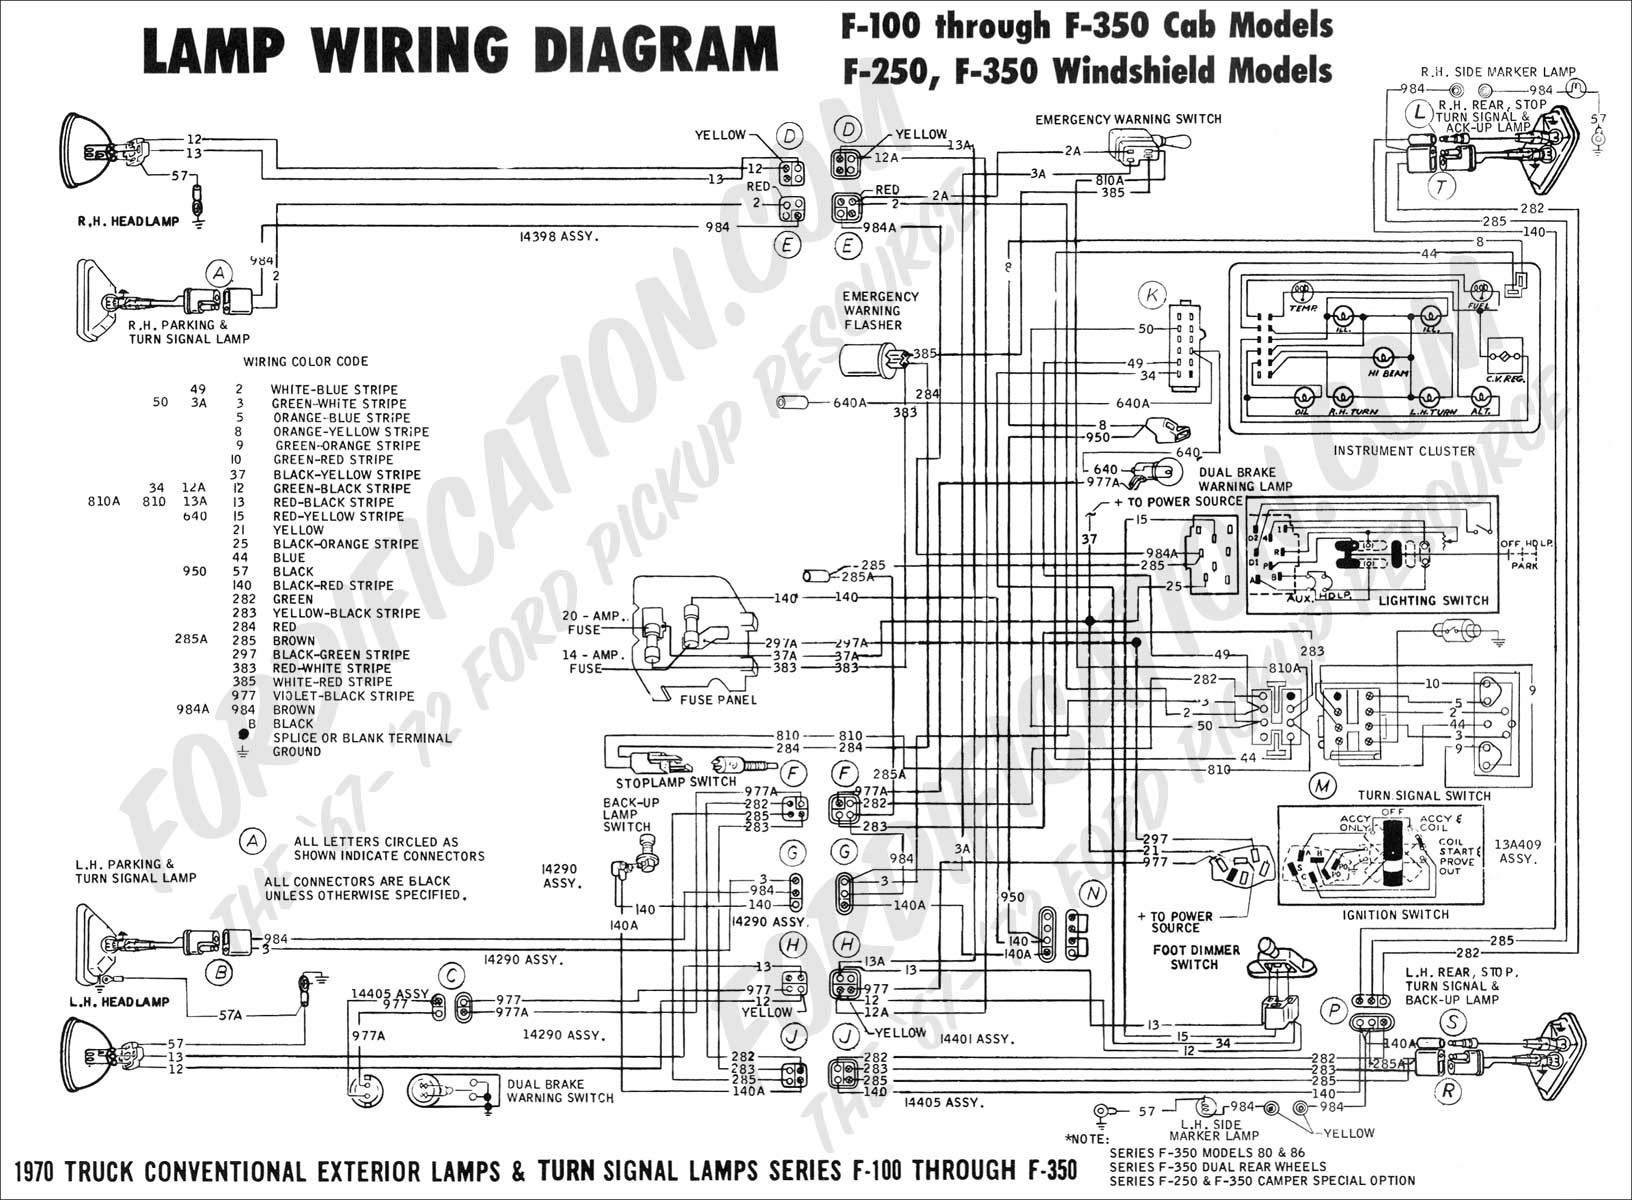 ford f550 wiring diagrams 5t sprachentogo de \u2022f550 wiring diagram coo vipie de u2022 rh coo vipie de 1999 ford f550 wiring diagram ford f550 electrical diagram